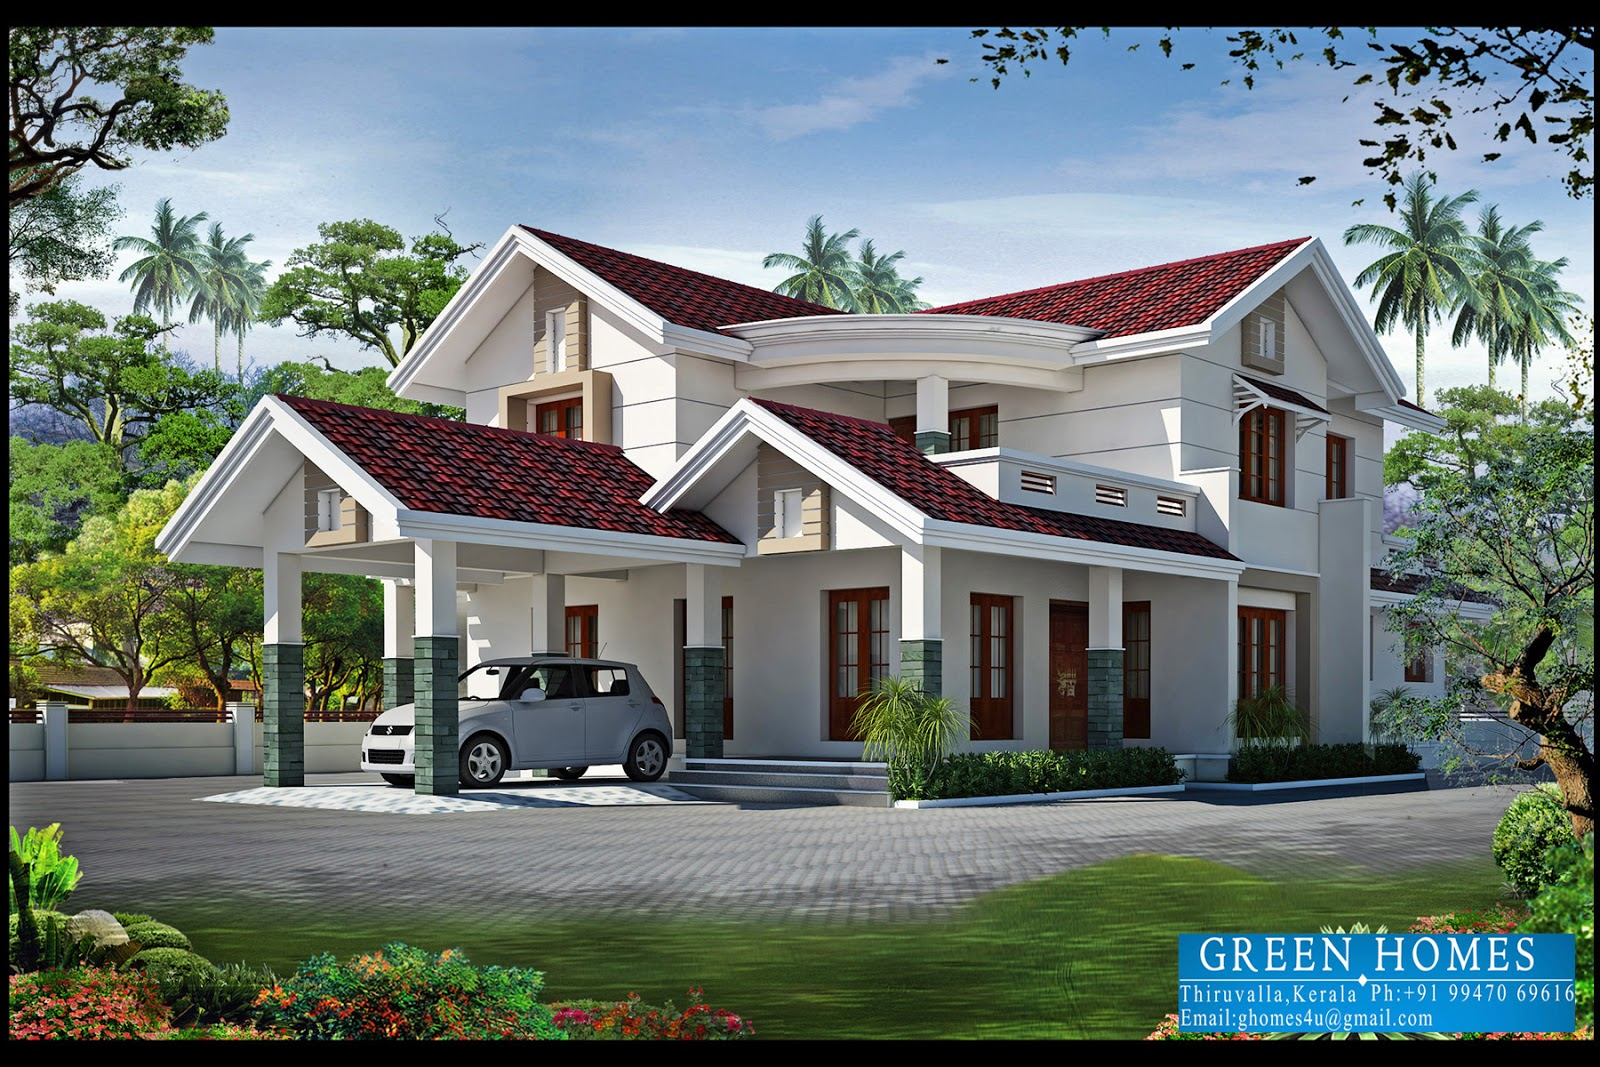 Green homes december 2012 for Kerala house models and plans